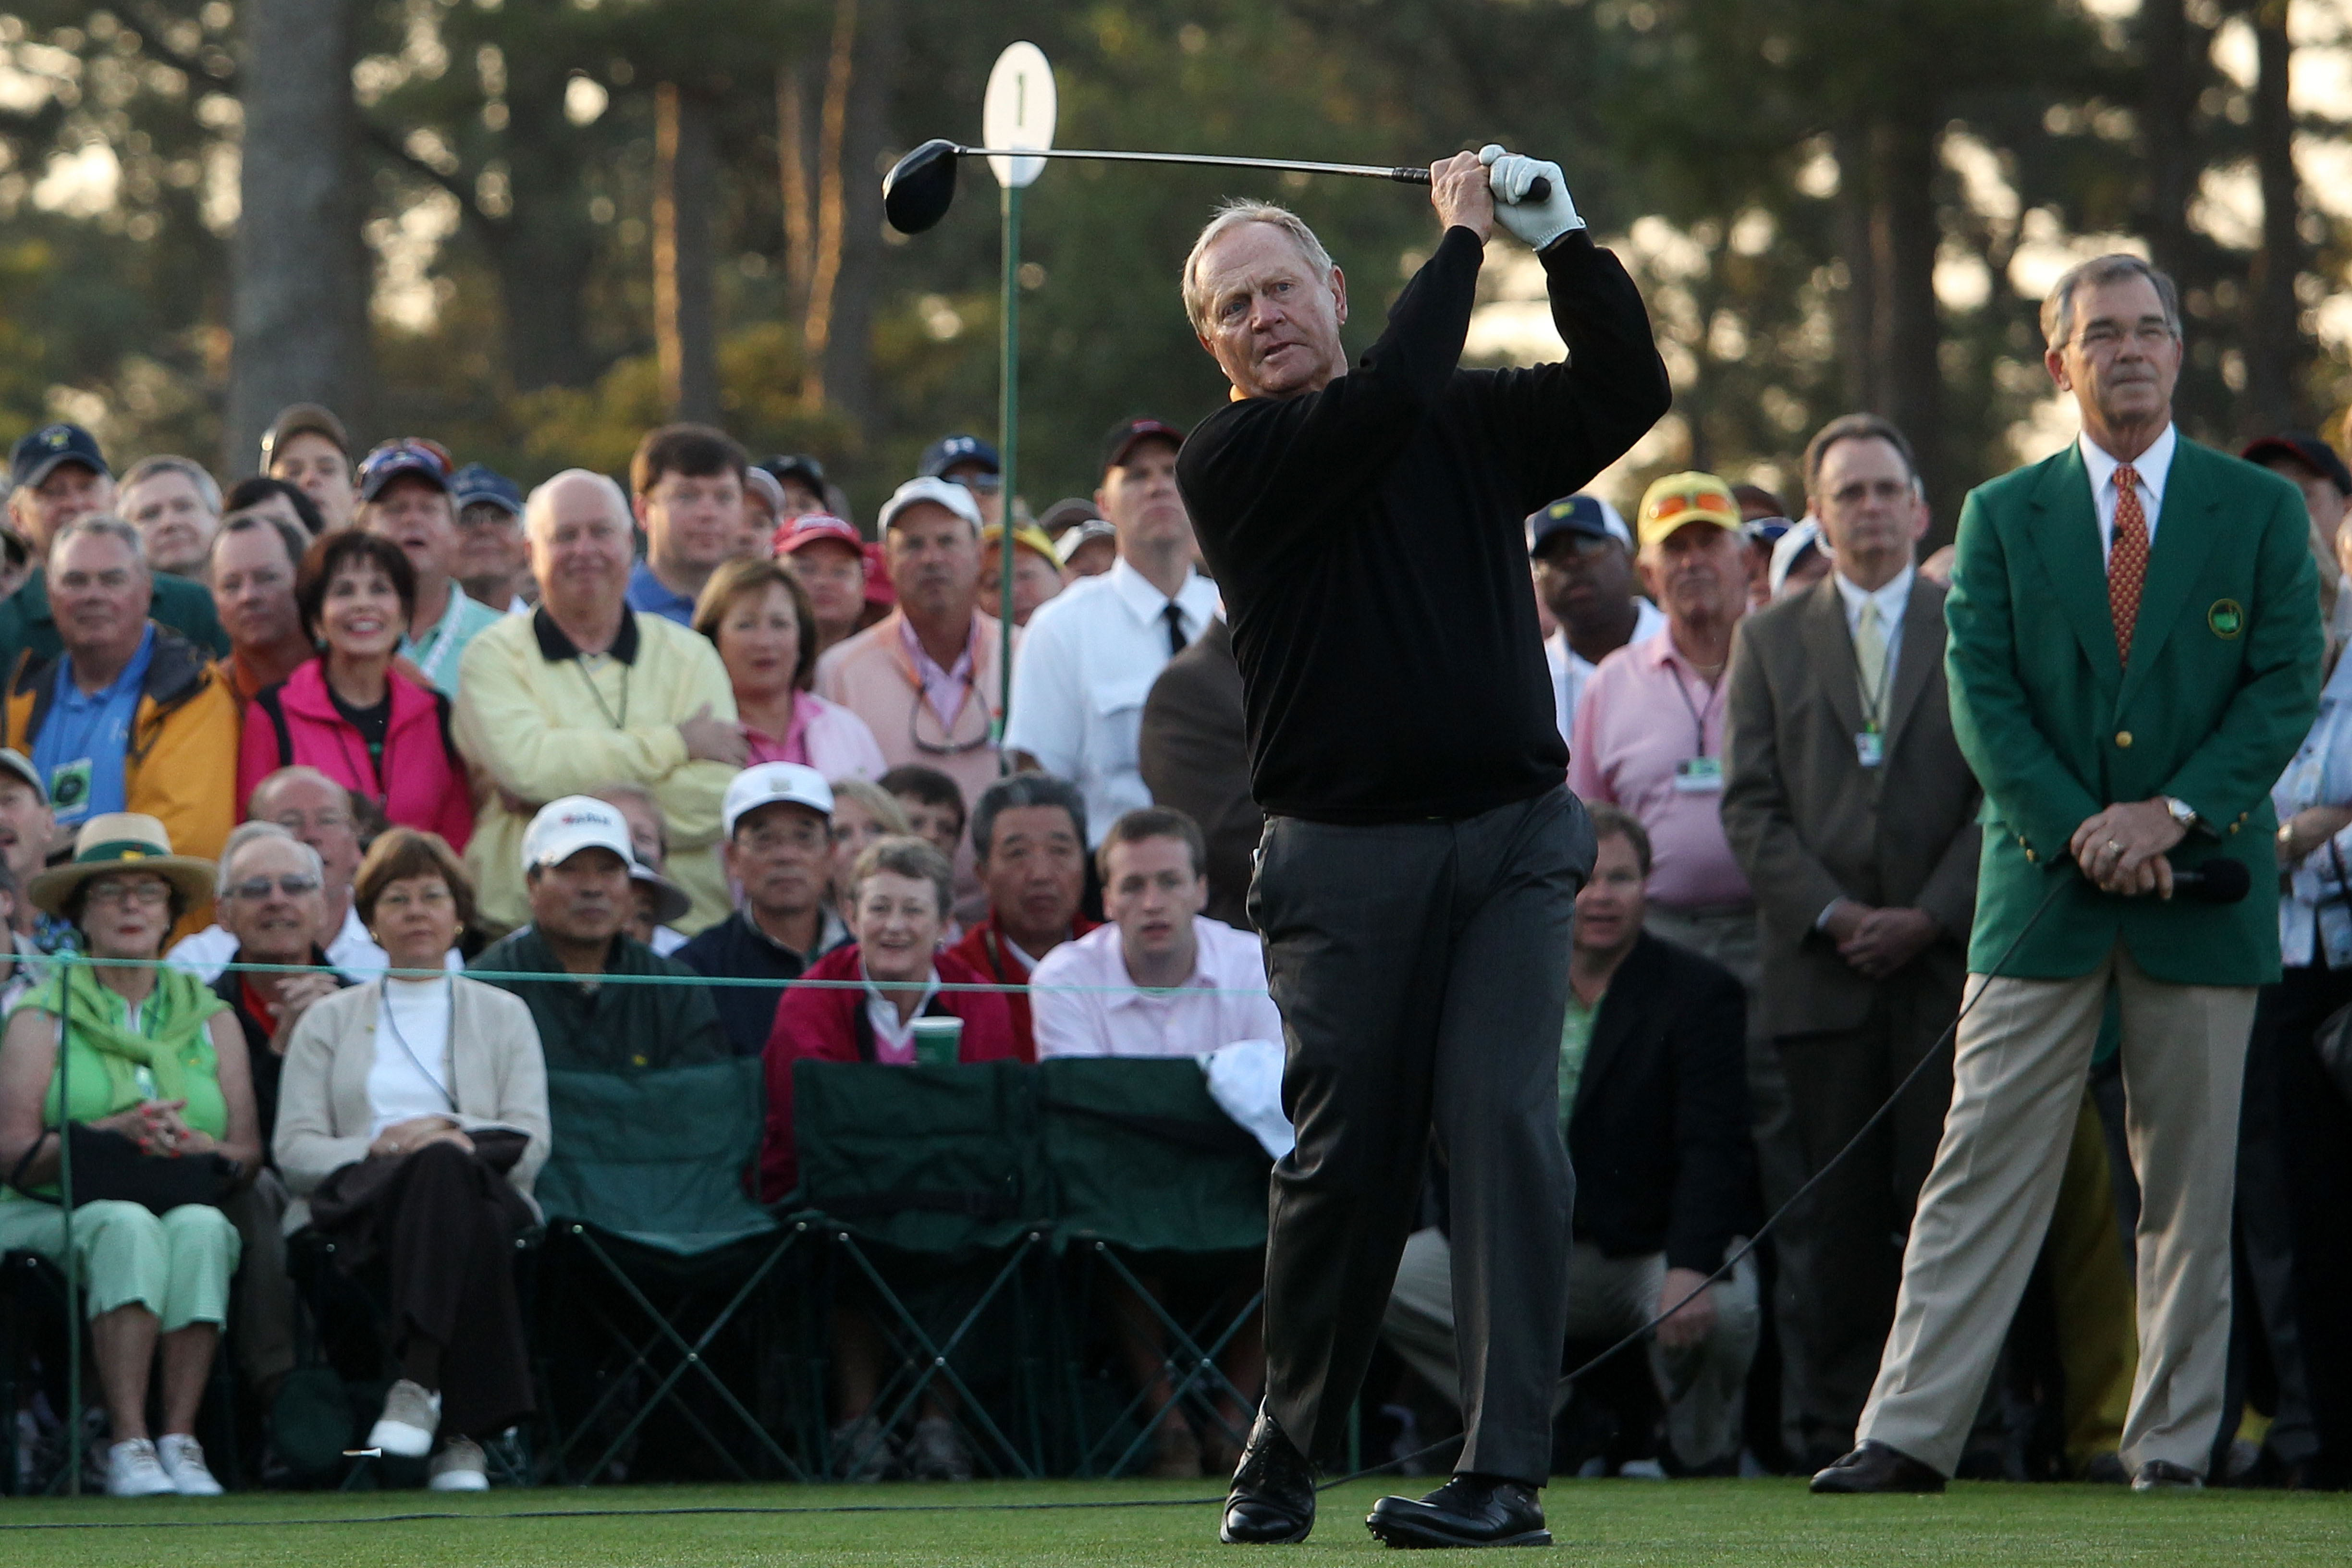 AUGUSTA, GA - APRIL 08:  Honorary starter Jack Nicklaus hits his tee shot on the first hole during the first round of the 2010 Masters Tournament at Augusta National Golf Club on April 8, 2010 in Augusta, Georgia.  (Photo by Andrew Redington/Getty Images)